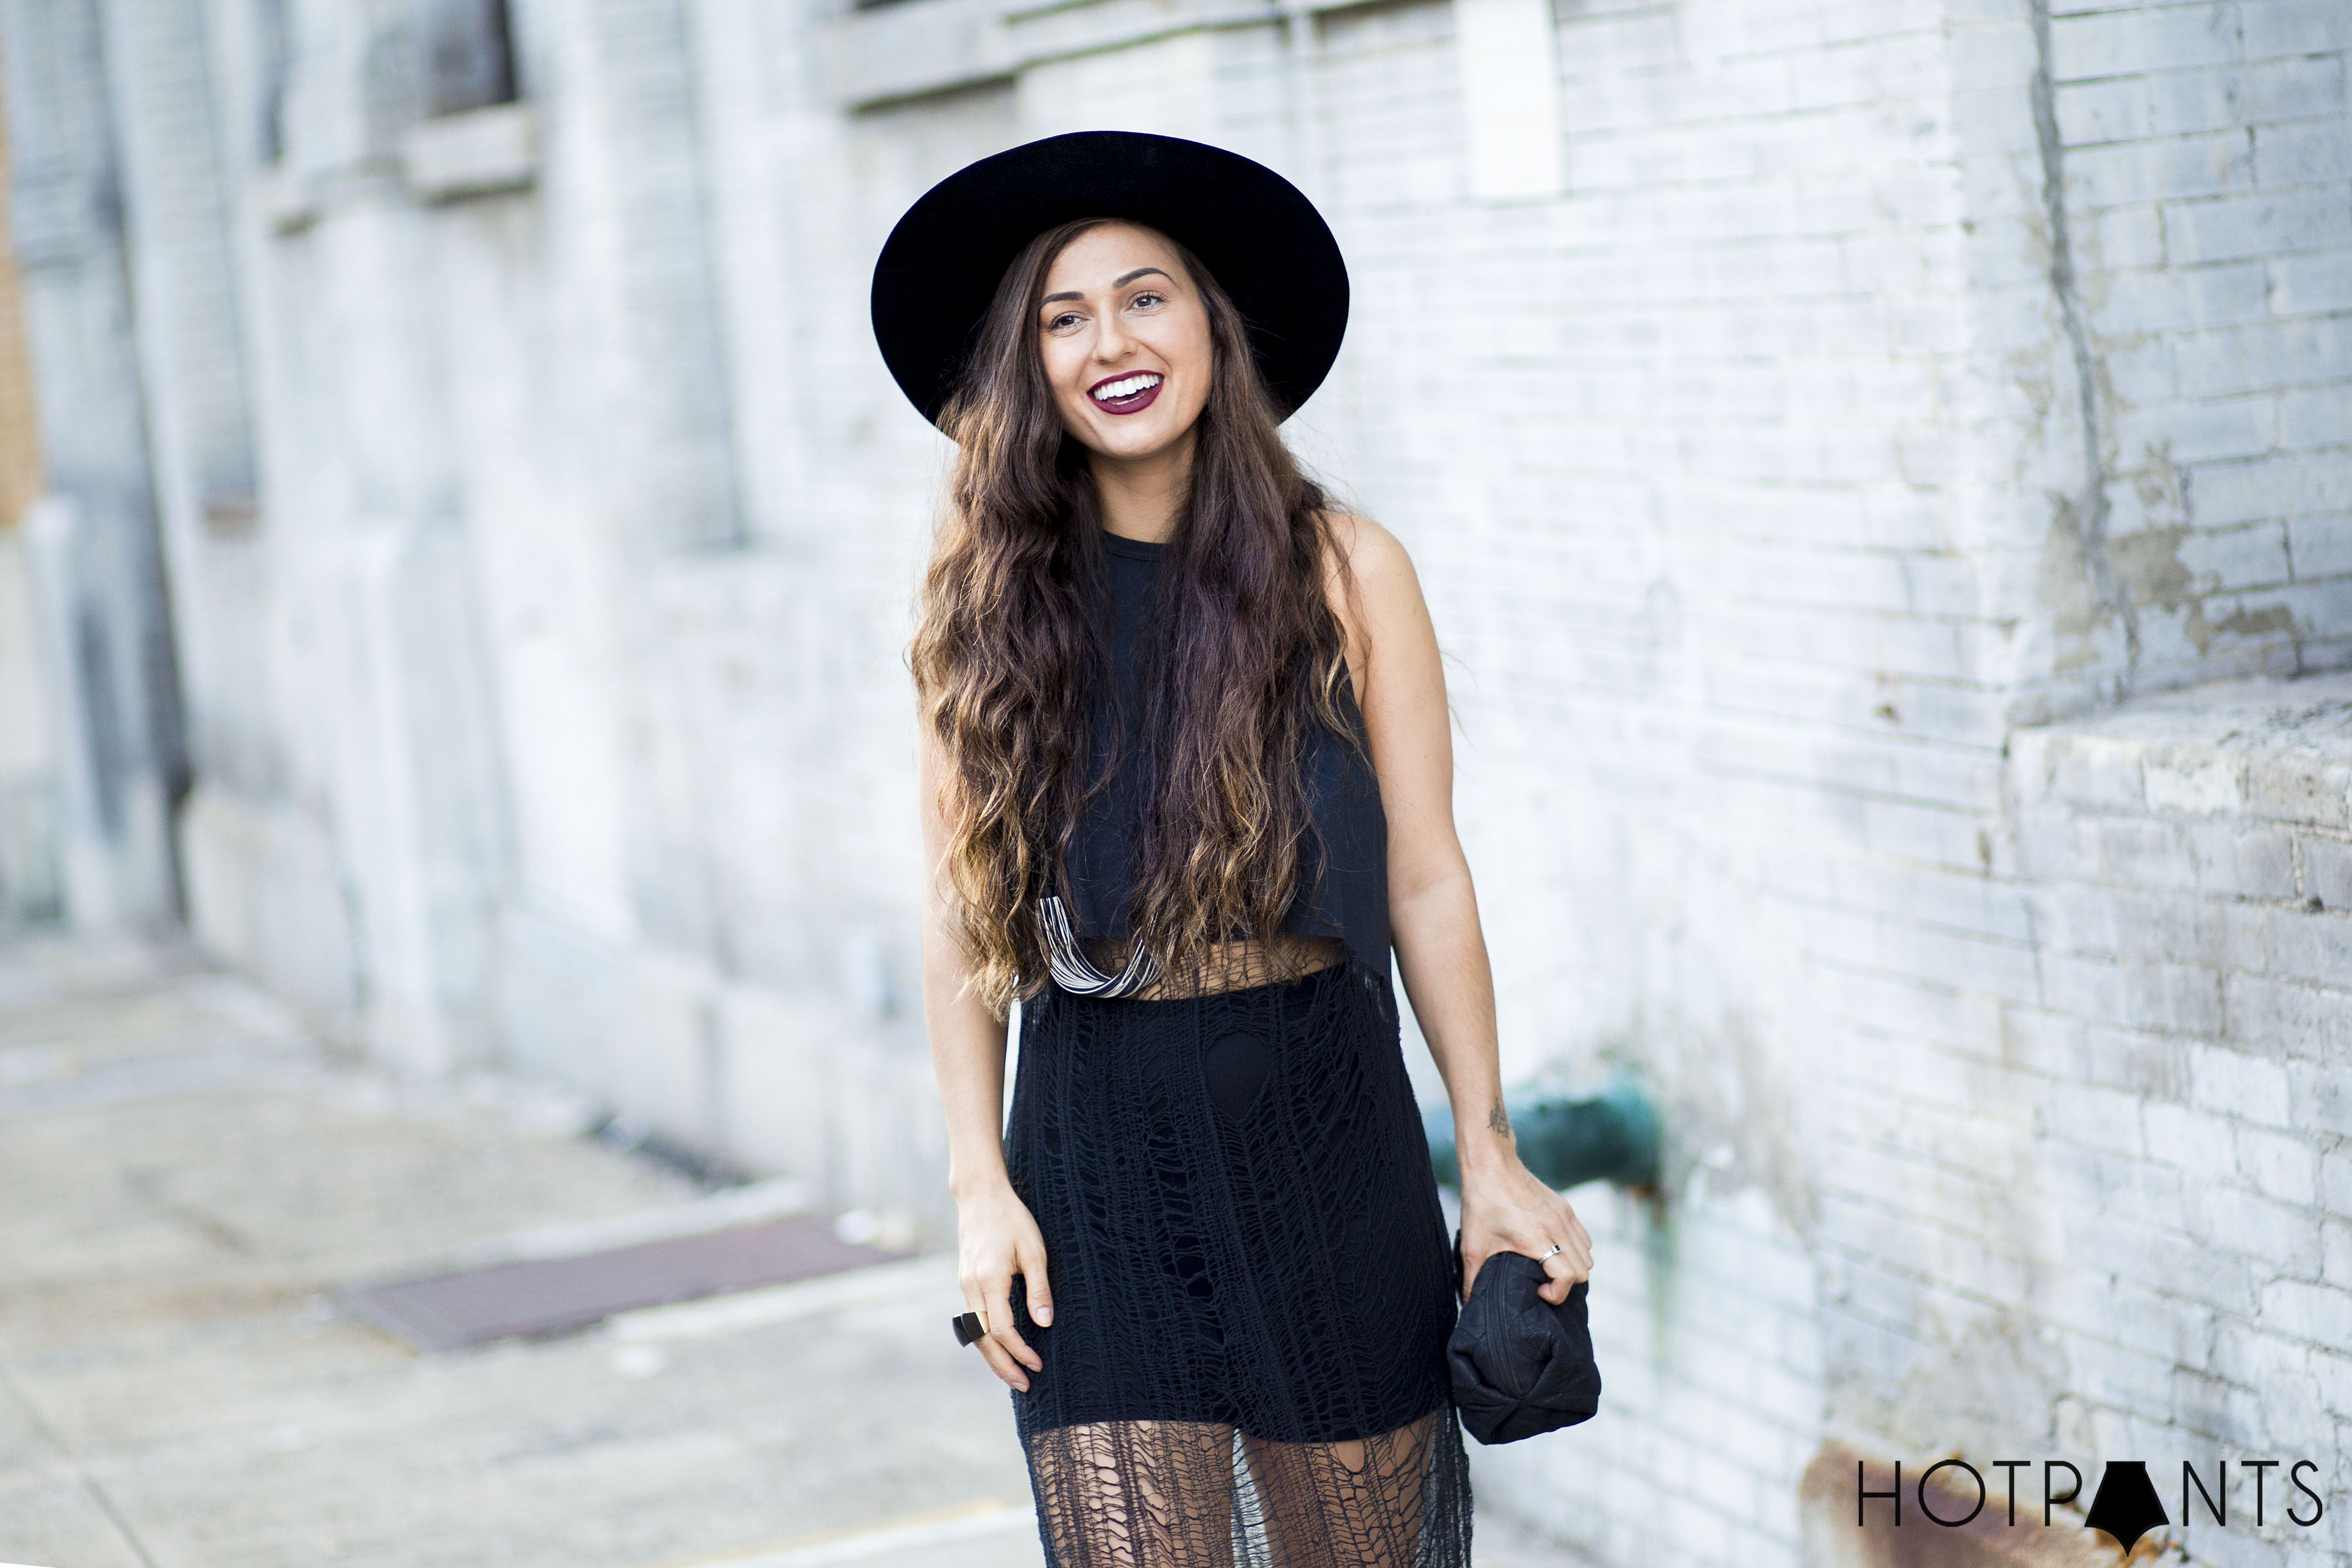 Curvy Woman New York Fashion Street Style Long Hair Blogger